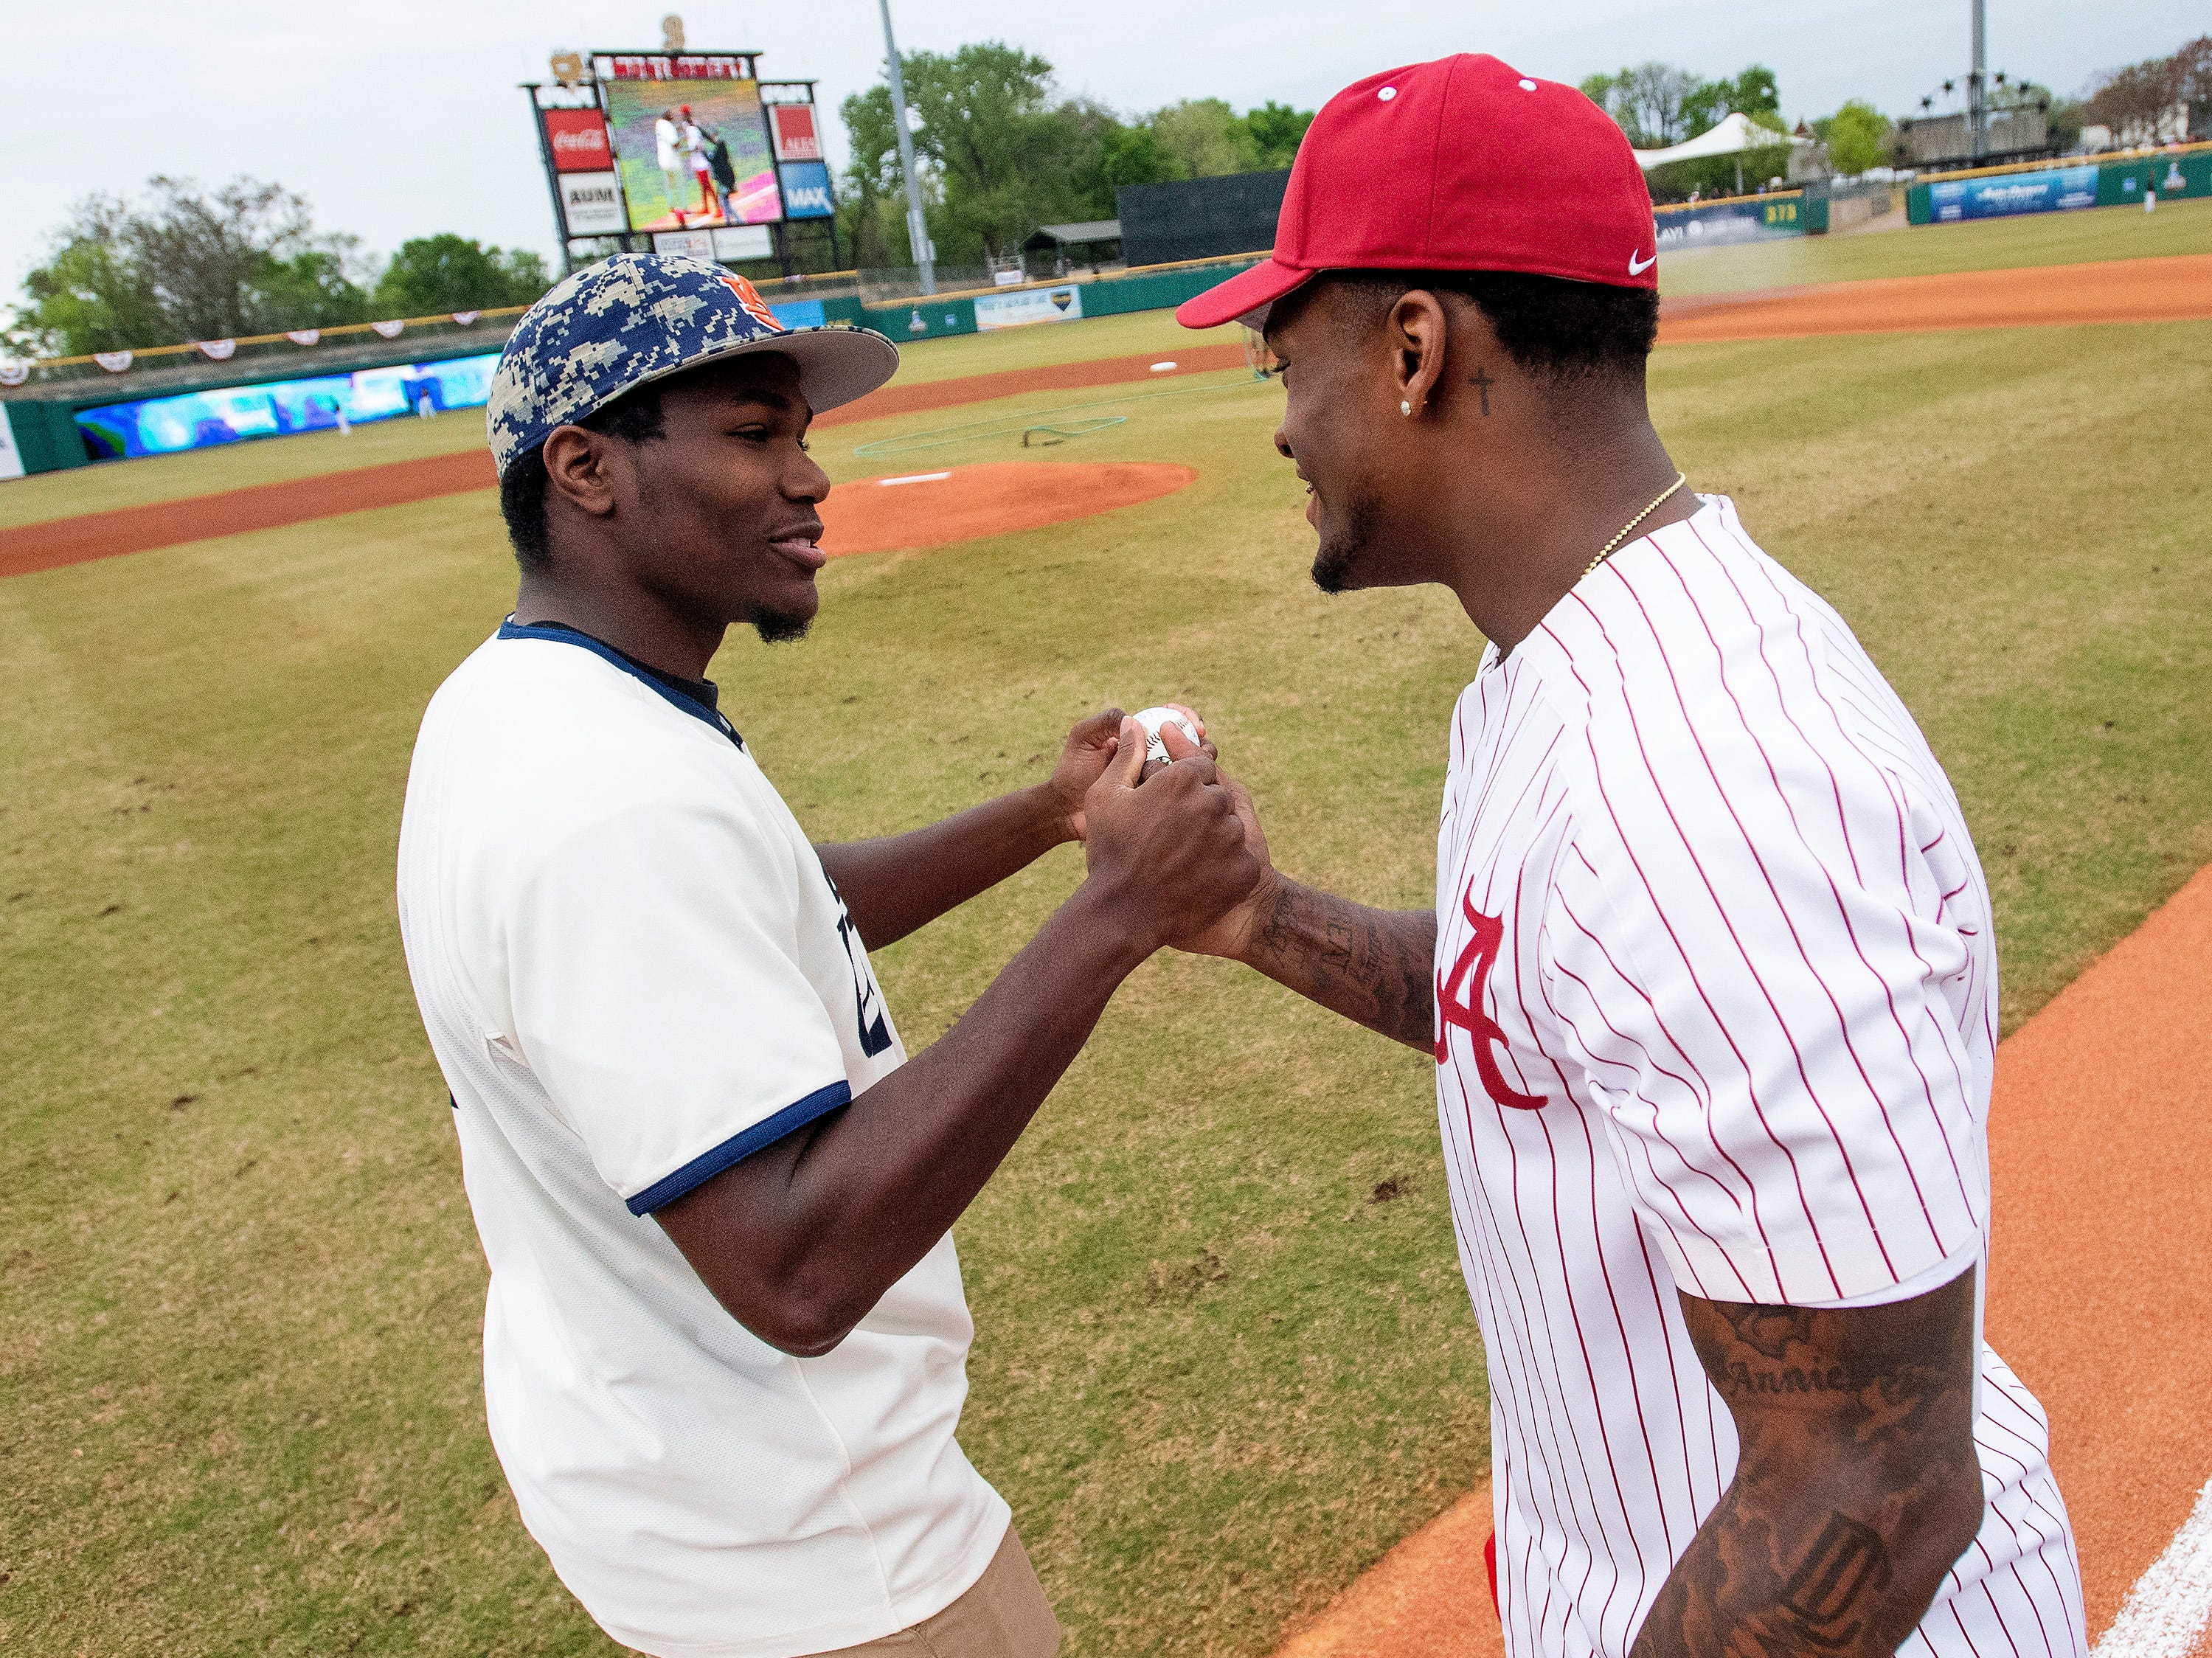 Former Auburn running back and current Detroit Lions running back Kerryon Johnson and former Alabama linebacker, who is going into next months NFL draft, Mack Wilson greet as they throw out ceremonial first pitches at the MAX Capital City Classic at Riverwalk Stadium in Montgomery, Ala., on Tuesday March 26, 2019.